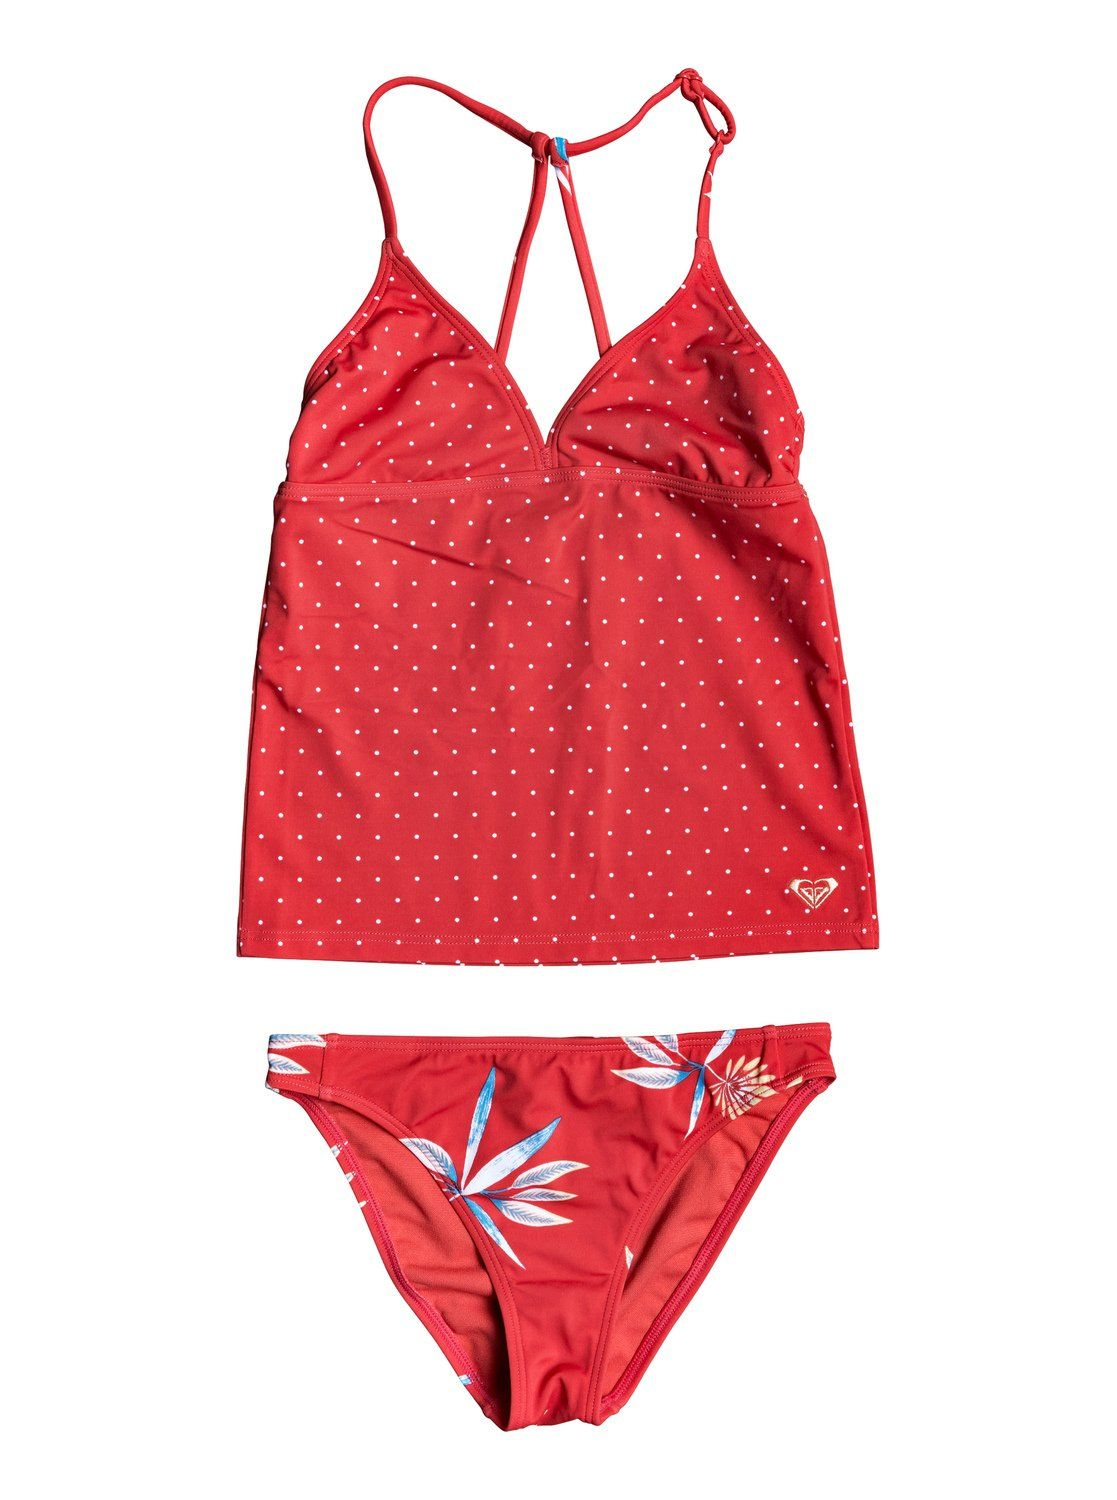 aaf436235f Girl's 7-14 Folky Way Tankini Set in 2019 | Haley's 10th birthday ...